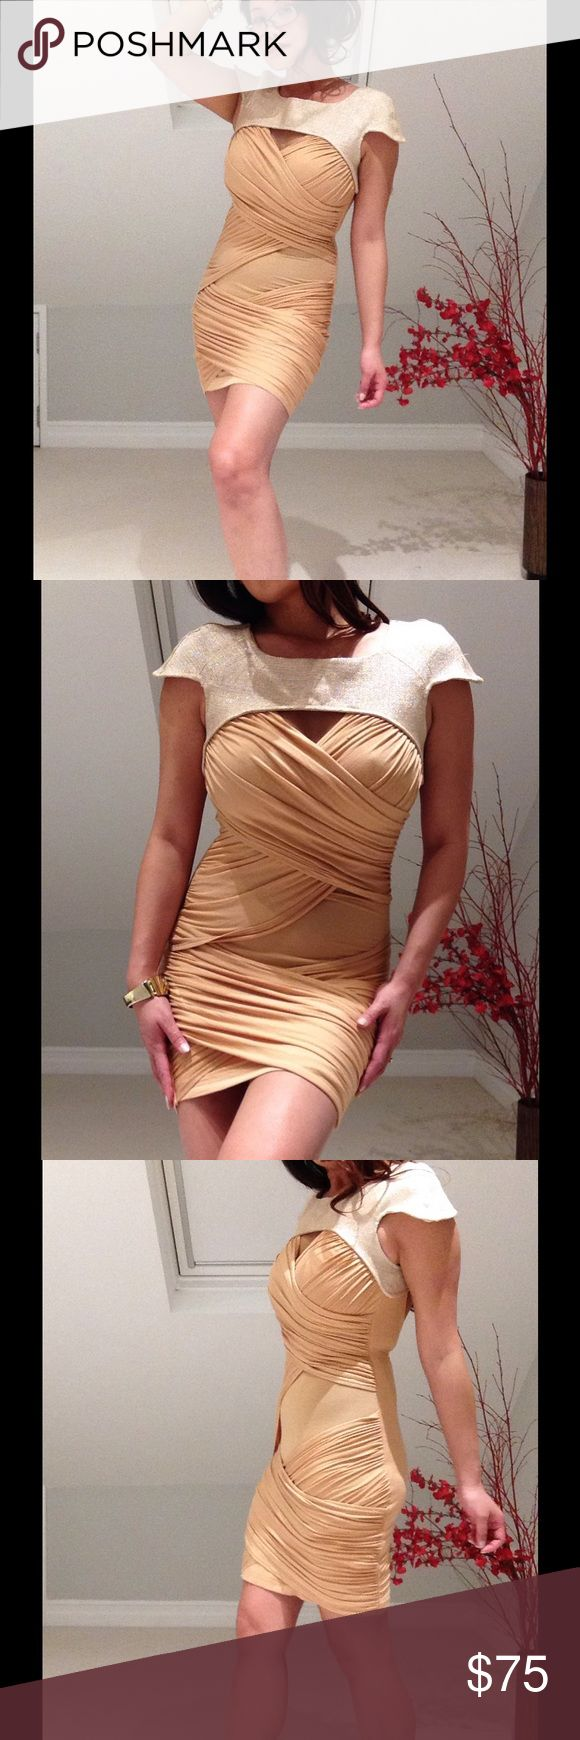 ✨Finders Keepers Gold Dust In My Arms Dress✨ ✨NWT Finders Keepers Gold Dust and Nude In My Arms Dress. Beautiful fitted nude dress with rouching throughout and cap sleeves. Cut out back is alluring and classy. Size 8 AU / 4 US. ✨ Finders Keepers Dresses Mini